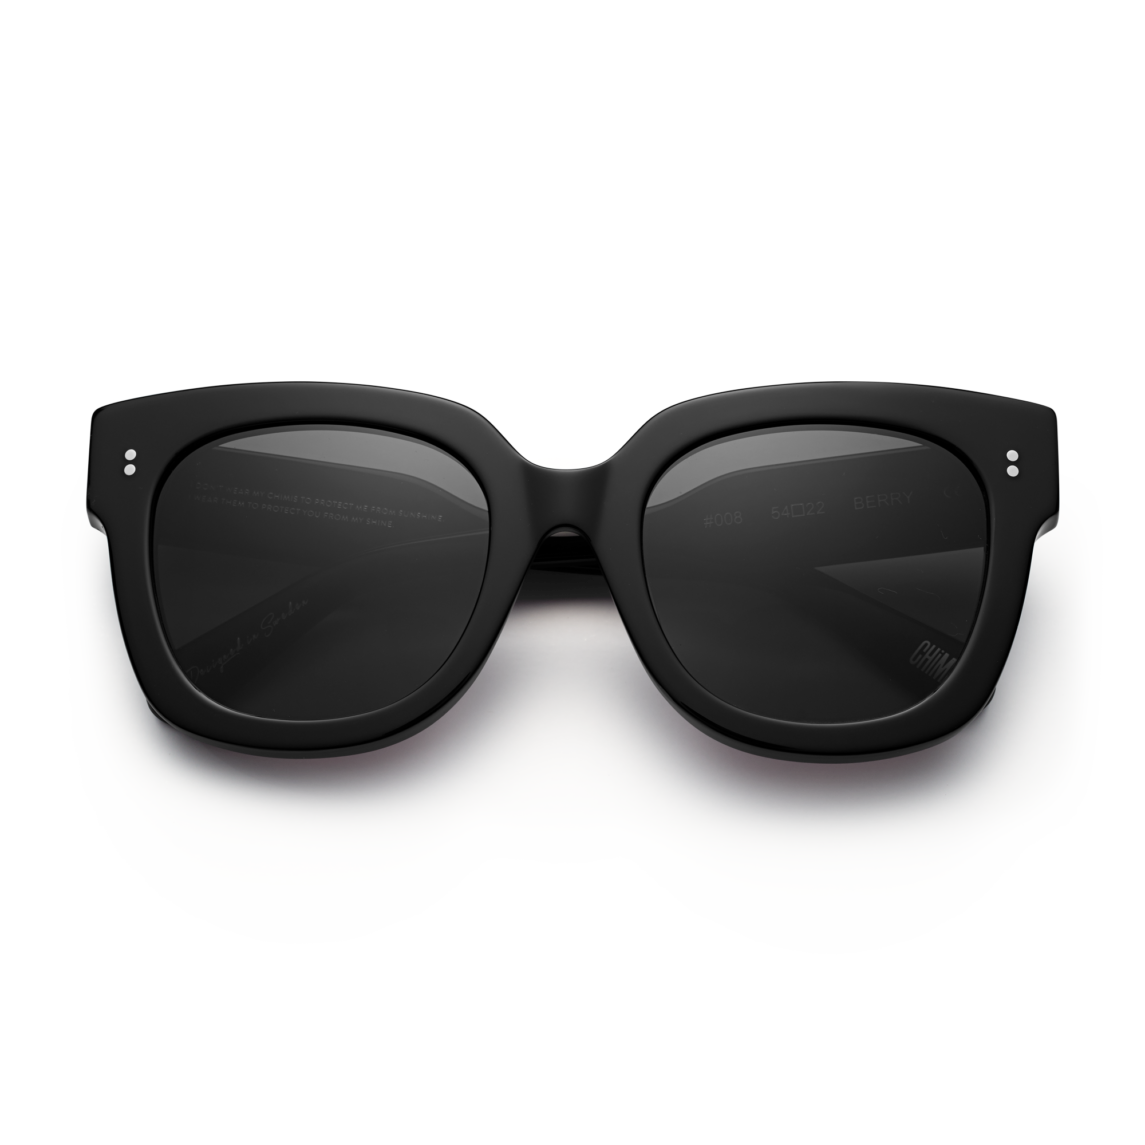 Chimi Berry #008 Sunglasses with Black Lenses